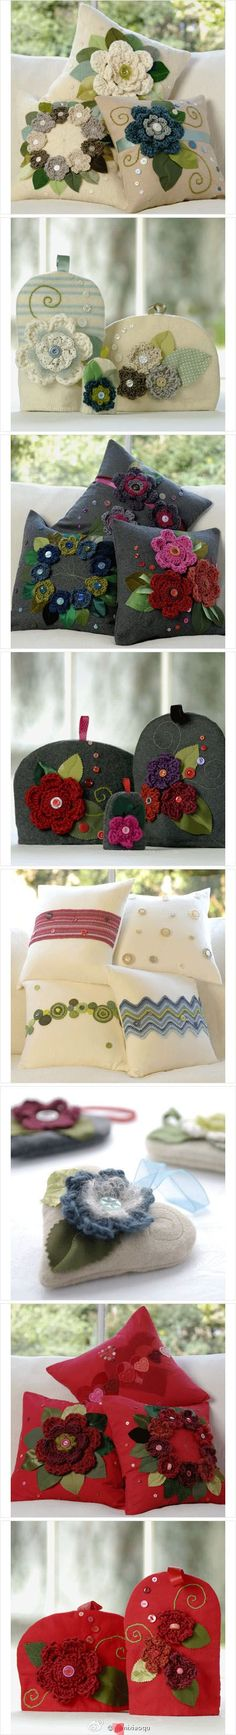 I love the combination of quilting, embroidery, and crochet embellishments!